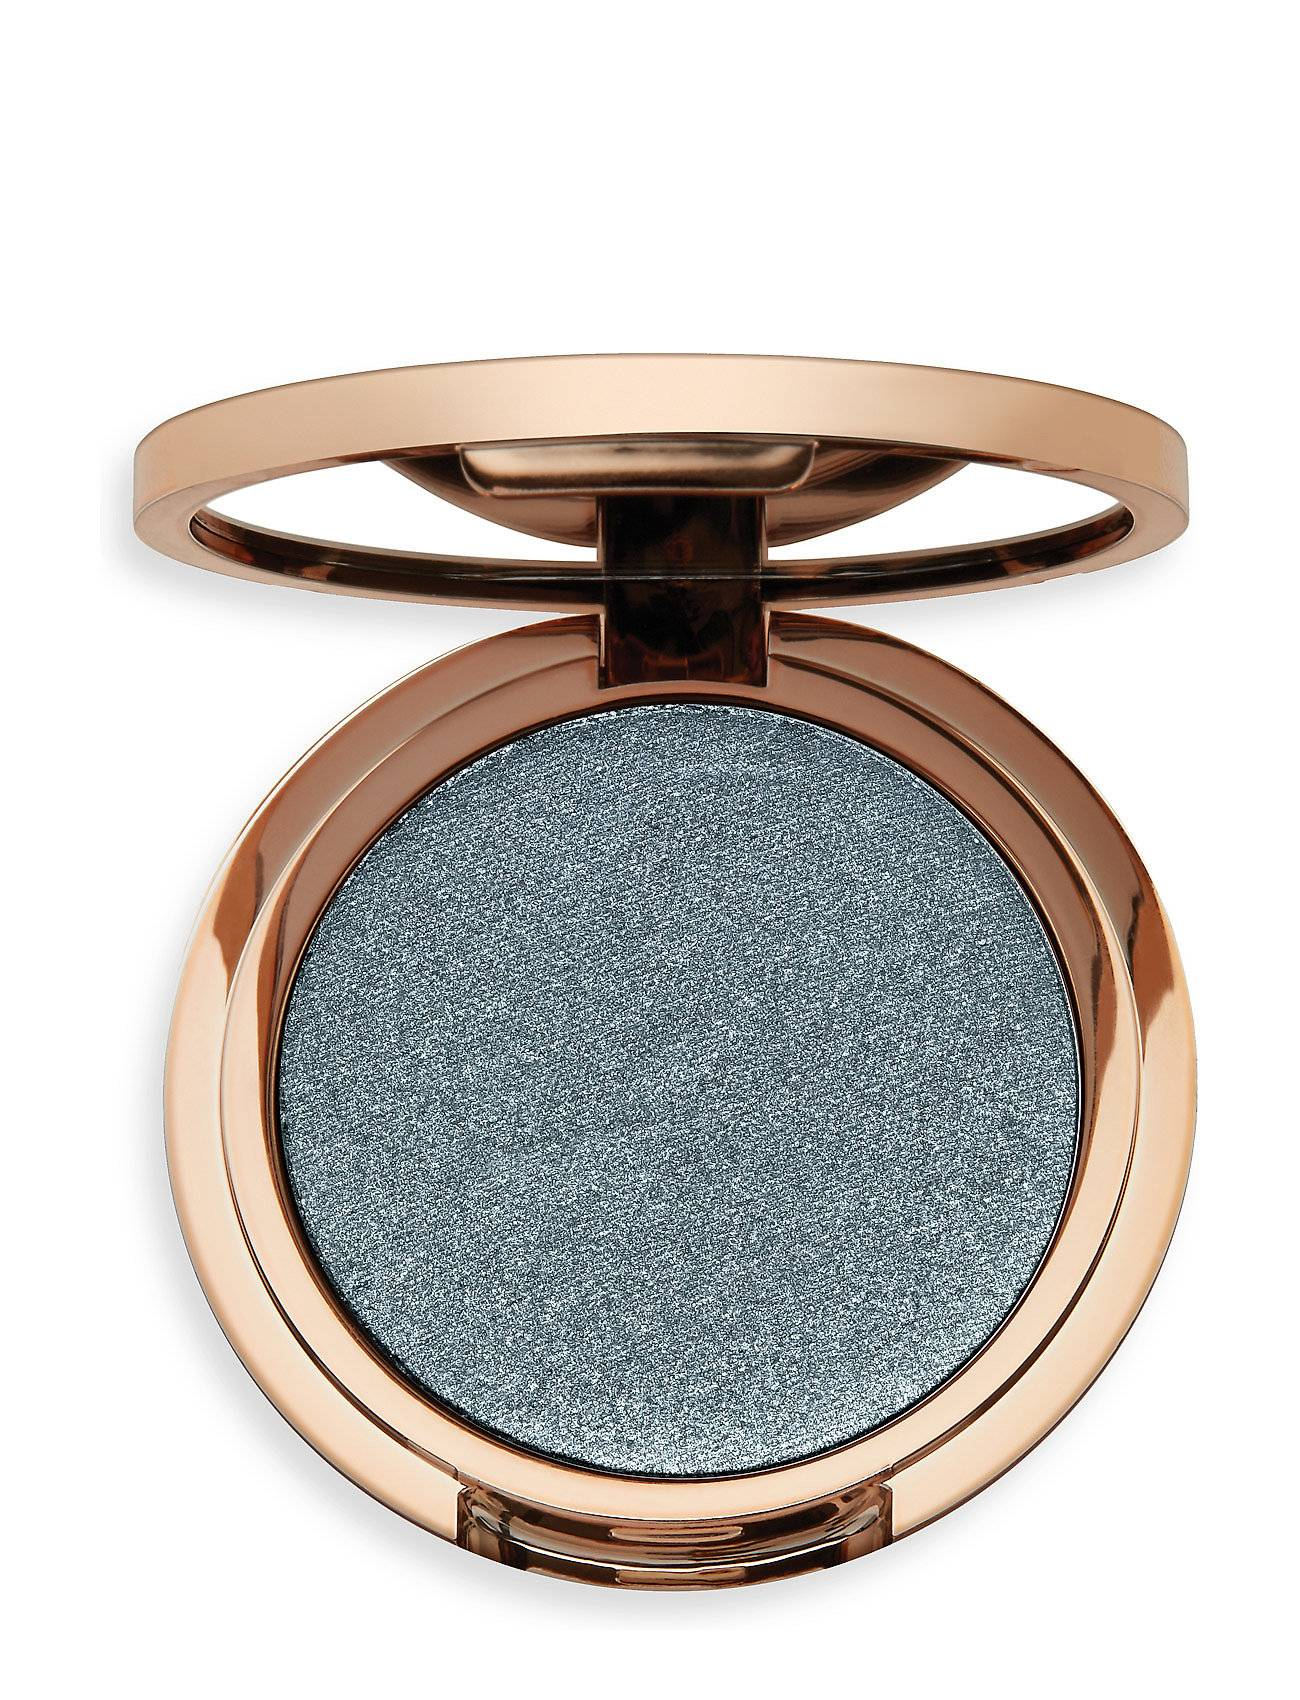 Nude by Nature Pressed Eyeshadow 05whitsunday Beauty WOMEN Makeup Eyes Eyeshadow - Not Palettes Sininen Nude By Nature